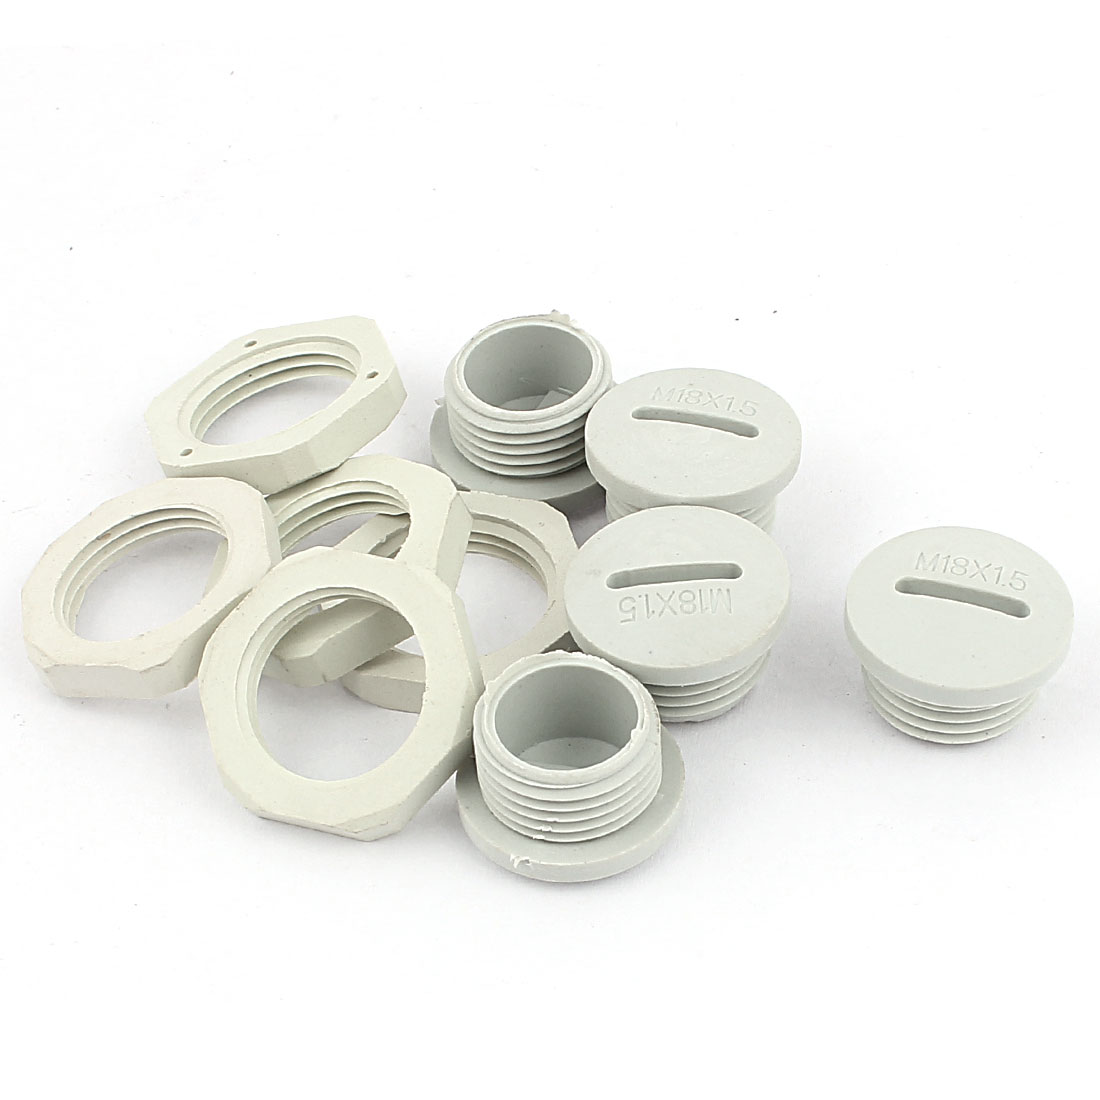 M18 x 1.5cm Plastic Round Head Pipe Adapter White 5Pcs